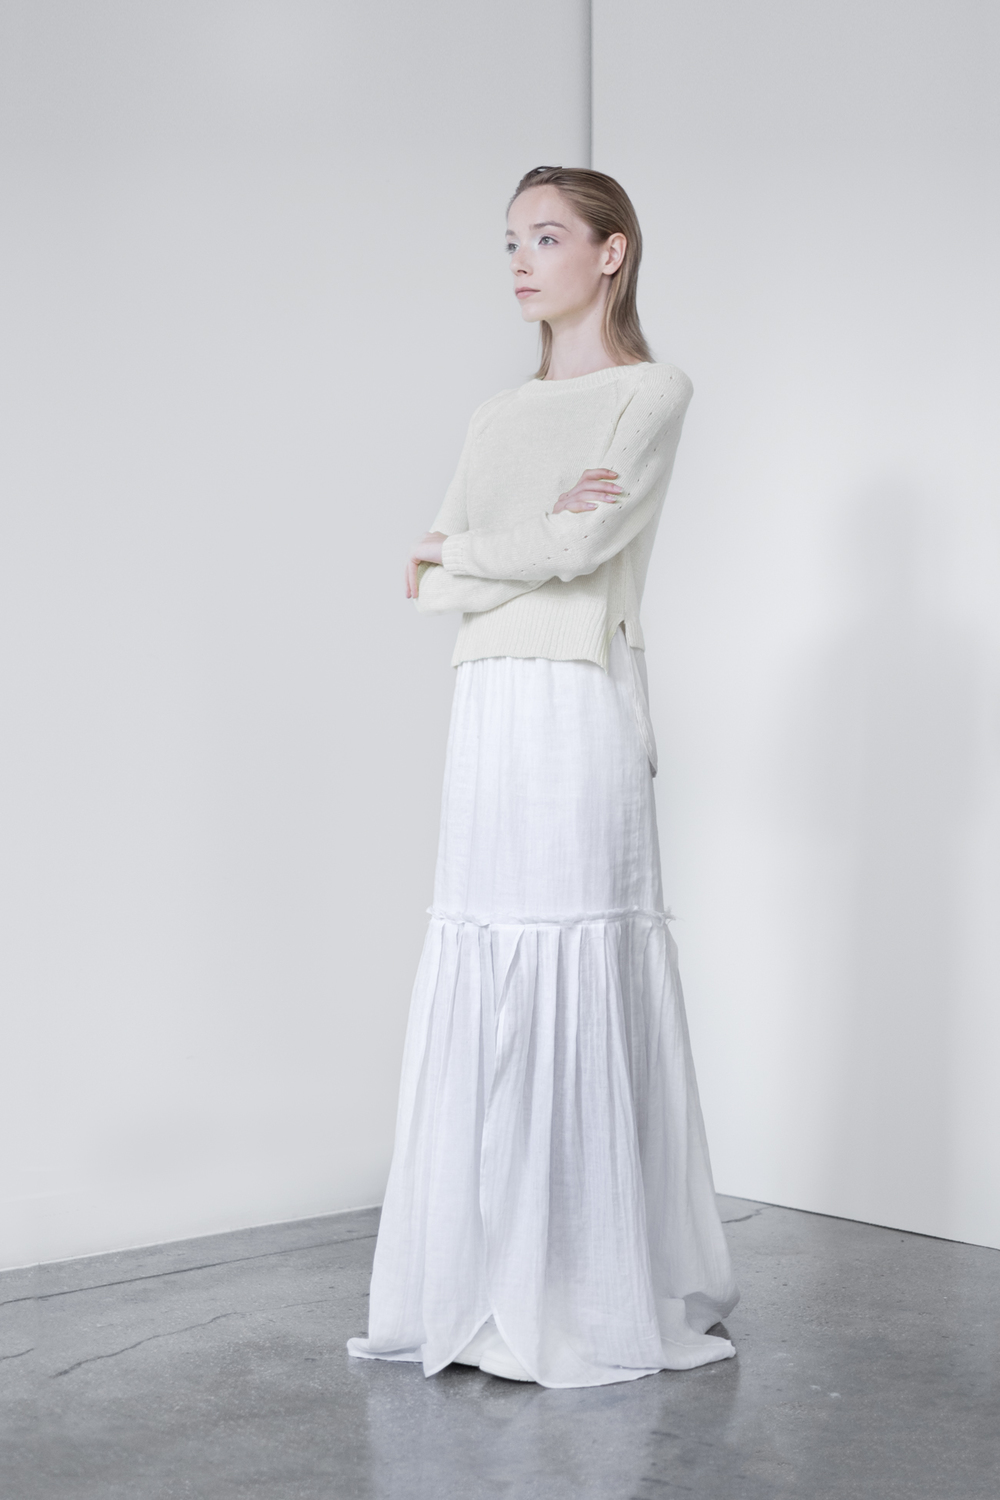 LOOK 9   TOP: 2260 / Bone  - Crew neck pullover with Silk crepe de chine shirt tail.   BOTTOM: 2291 / Blanc - Long maxi skirt also can be worn as strapless dress, in crinkle woven 2-layer cotton gauze.